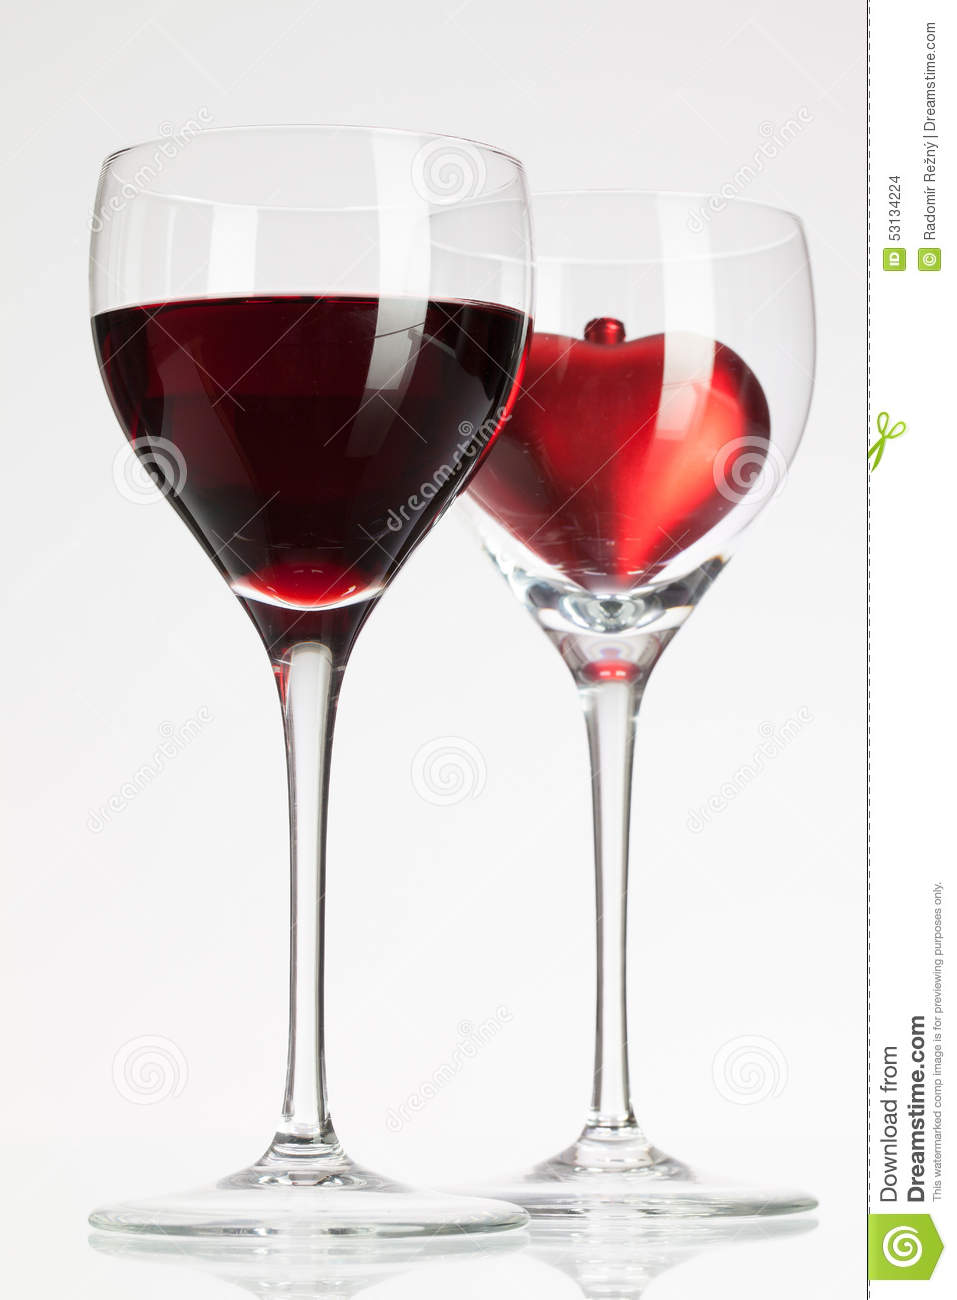 verres de vin avec le vin rouge et le coeur photo stock image du ouvert oenologie 53134224. Black Bedroom Furniture Sets. Home Design Ideas